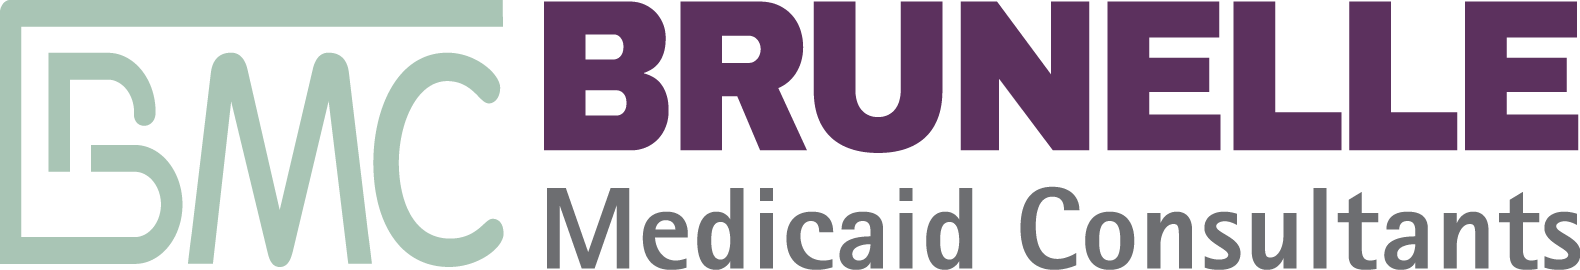 Brunelle Medicaid Consultants LLC